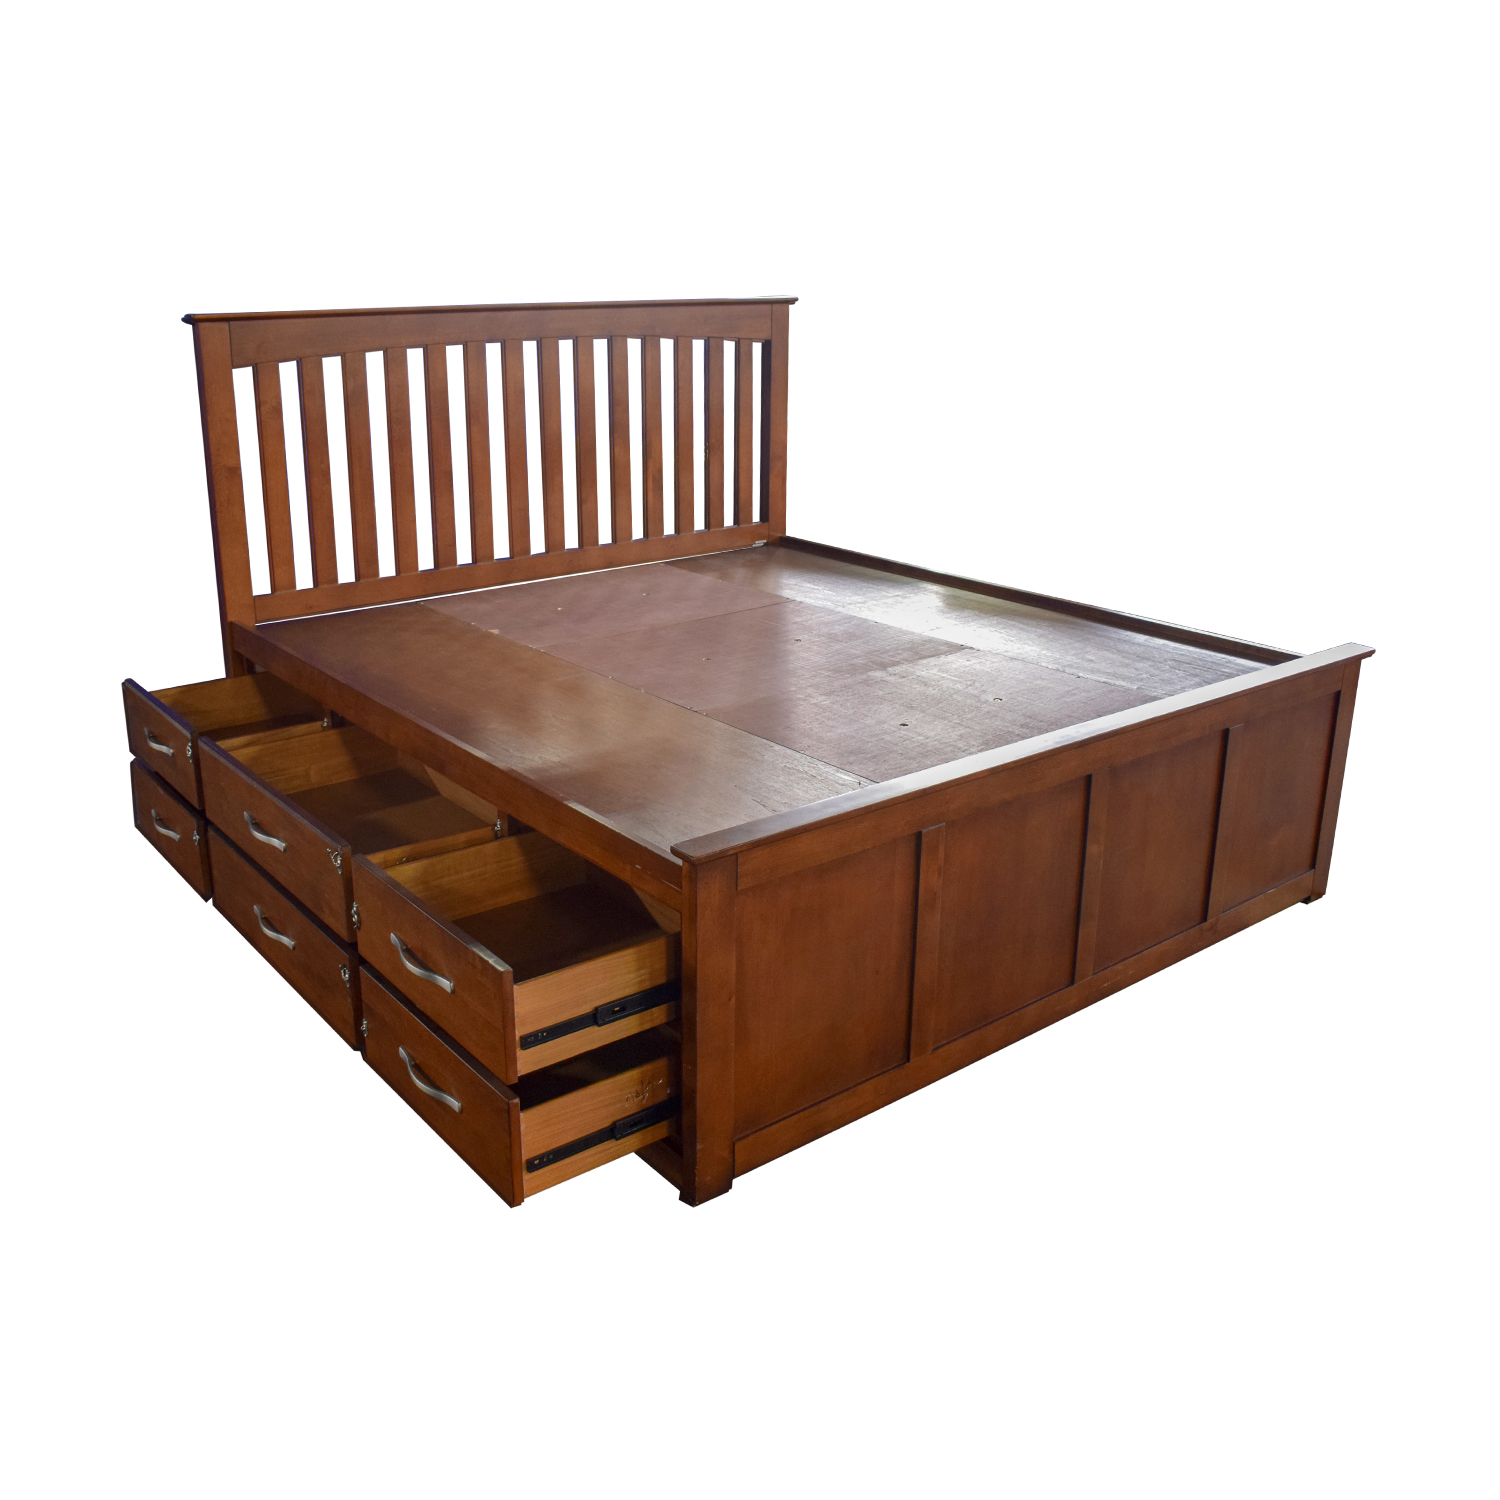 Raymour & Flanigan Raymour & Flanigan King Platform Bed Frame with Storage Drawers used